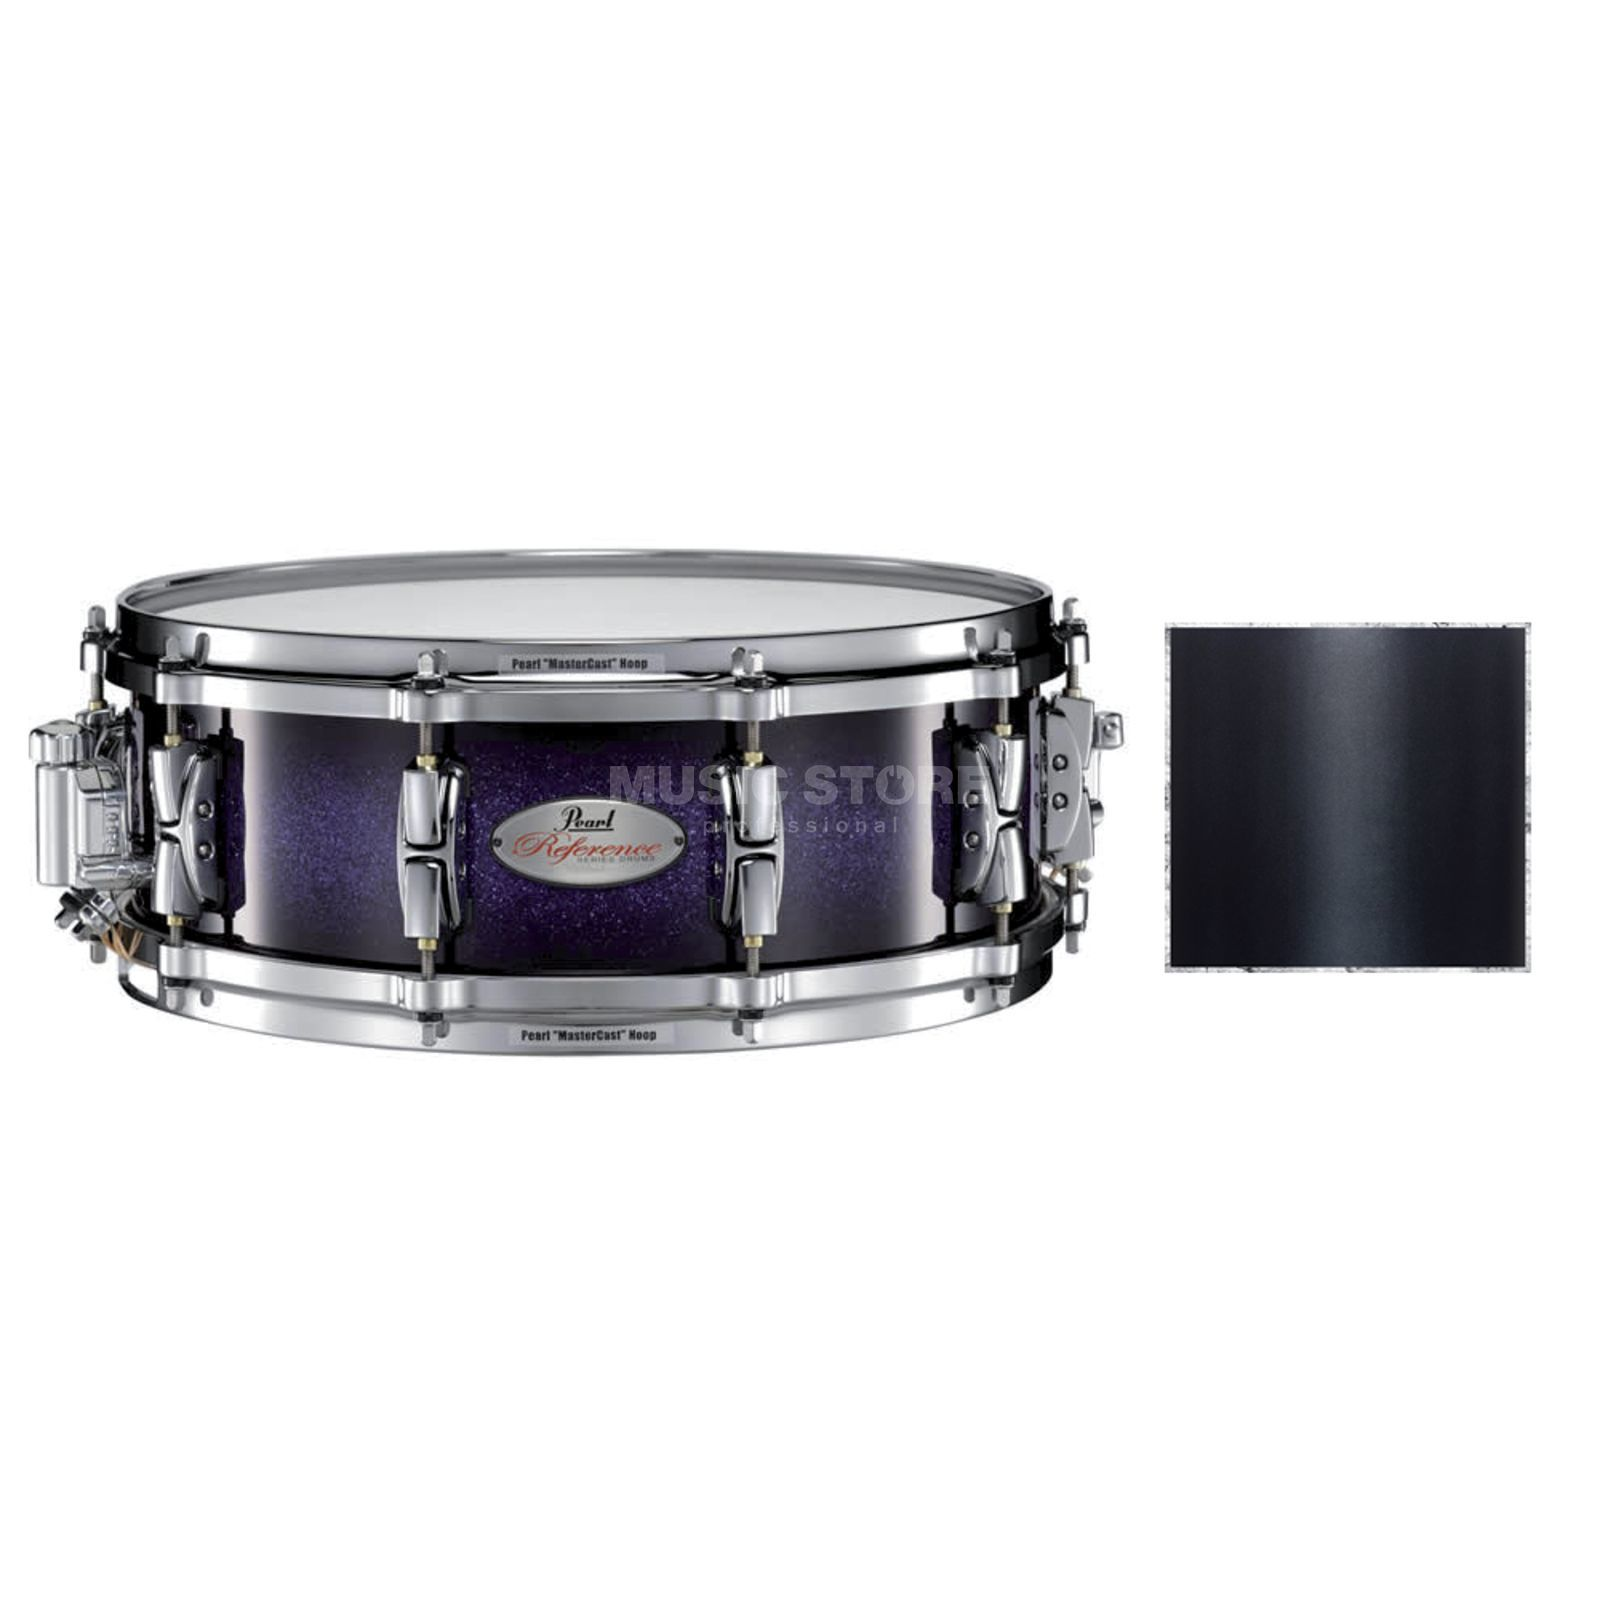 "Pearl RF1450S/C Reference Snare 14""x5"", Black Pearl #331 Produktbild"